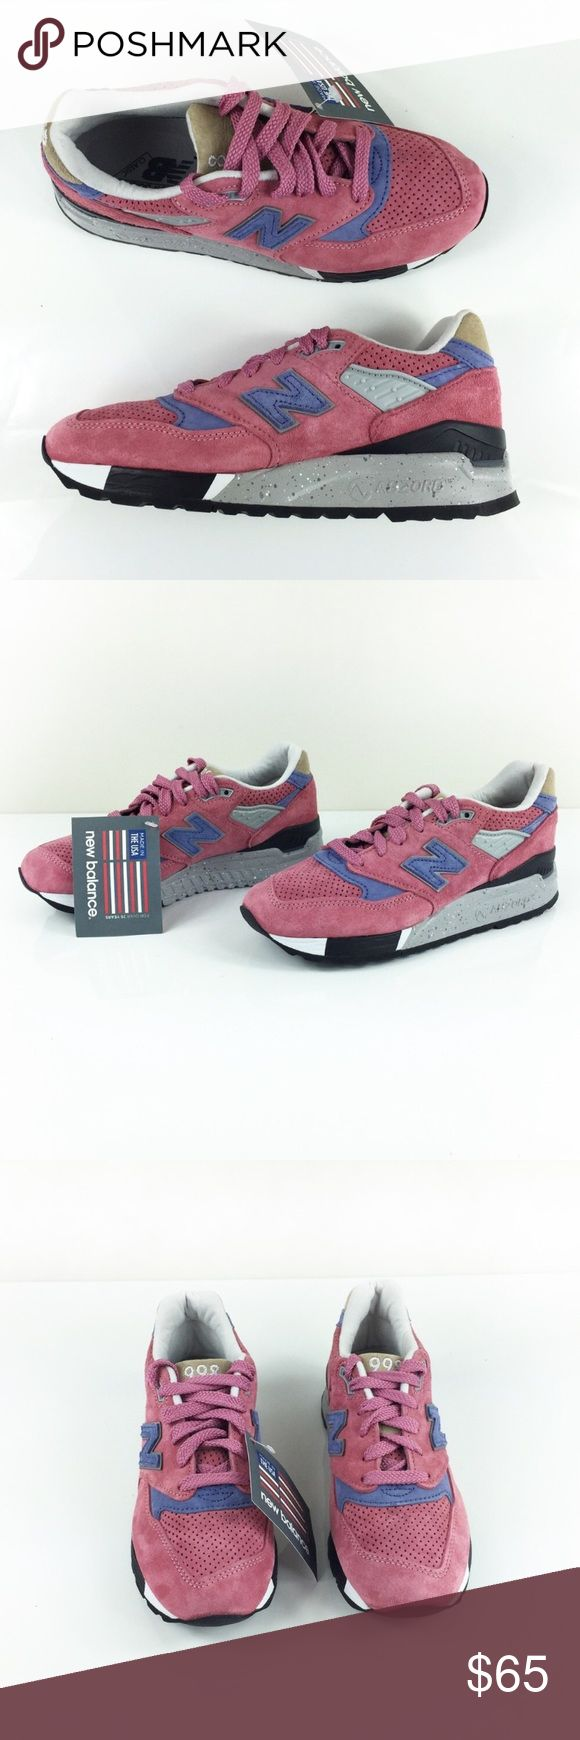 NEW BALANCE 988 ABZORB SNEAKERS 5 NEW BALANCE 988 ABZORB SNEAKERS in size 5 brand new, no box, flawless! Beautiful soft pink suede with tones of lavender and gray! Make an offer New Balance Shoes Sneakers